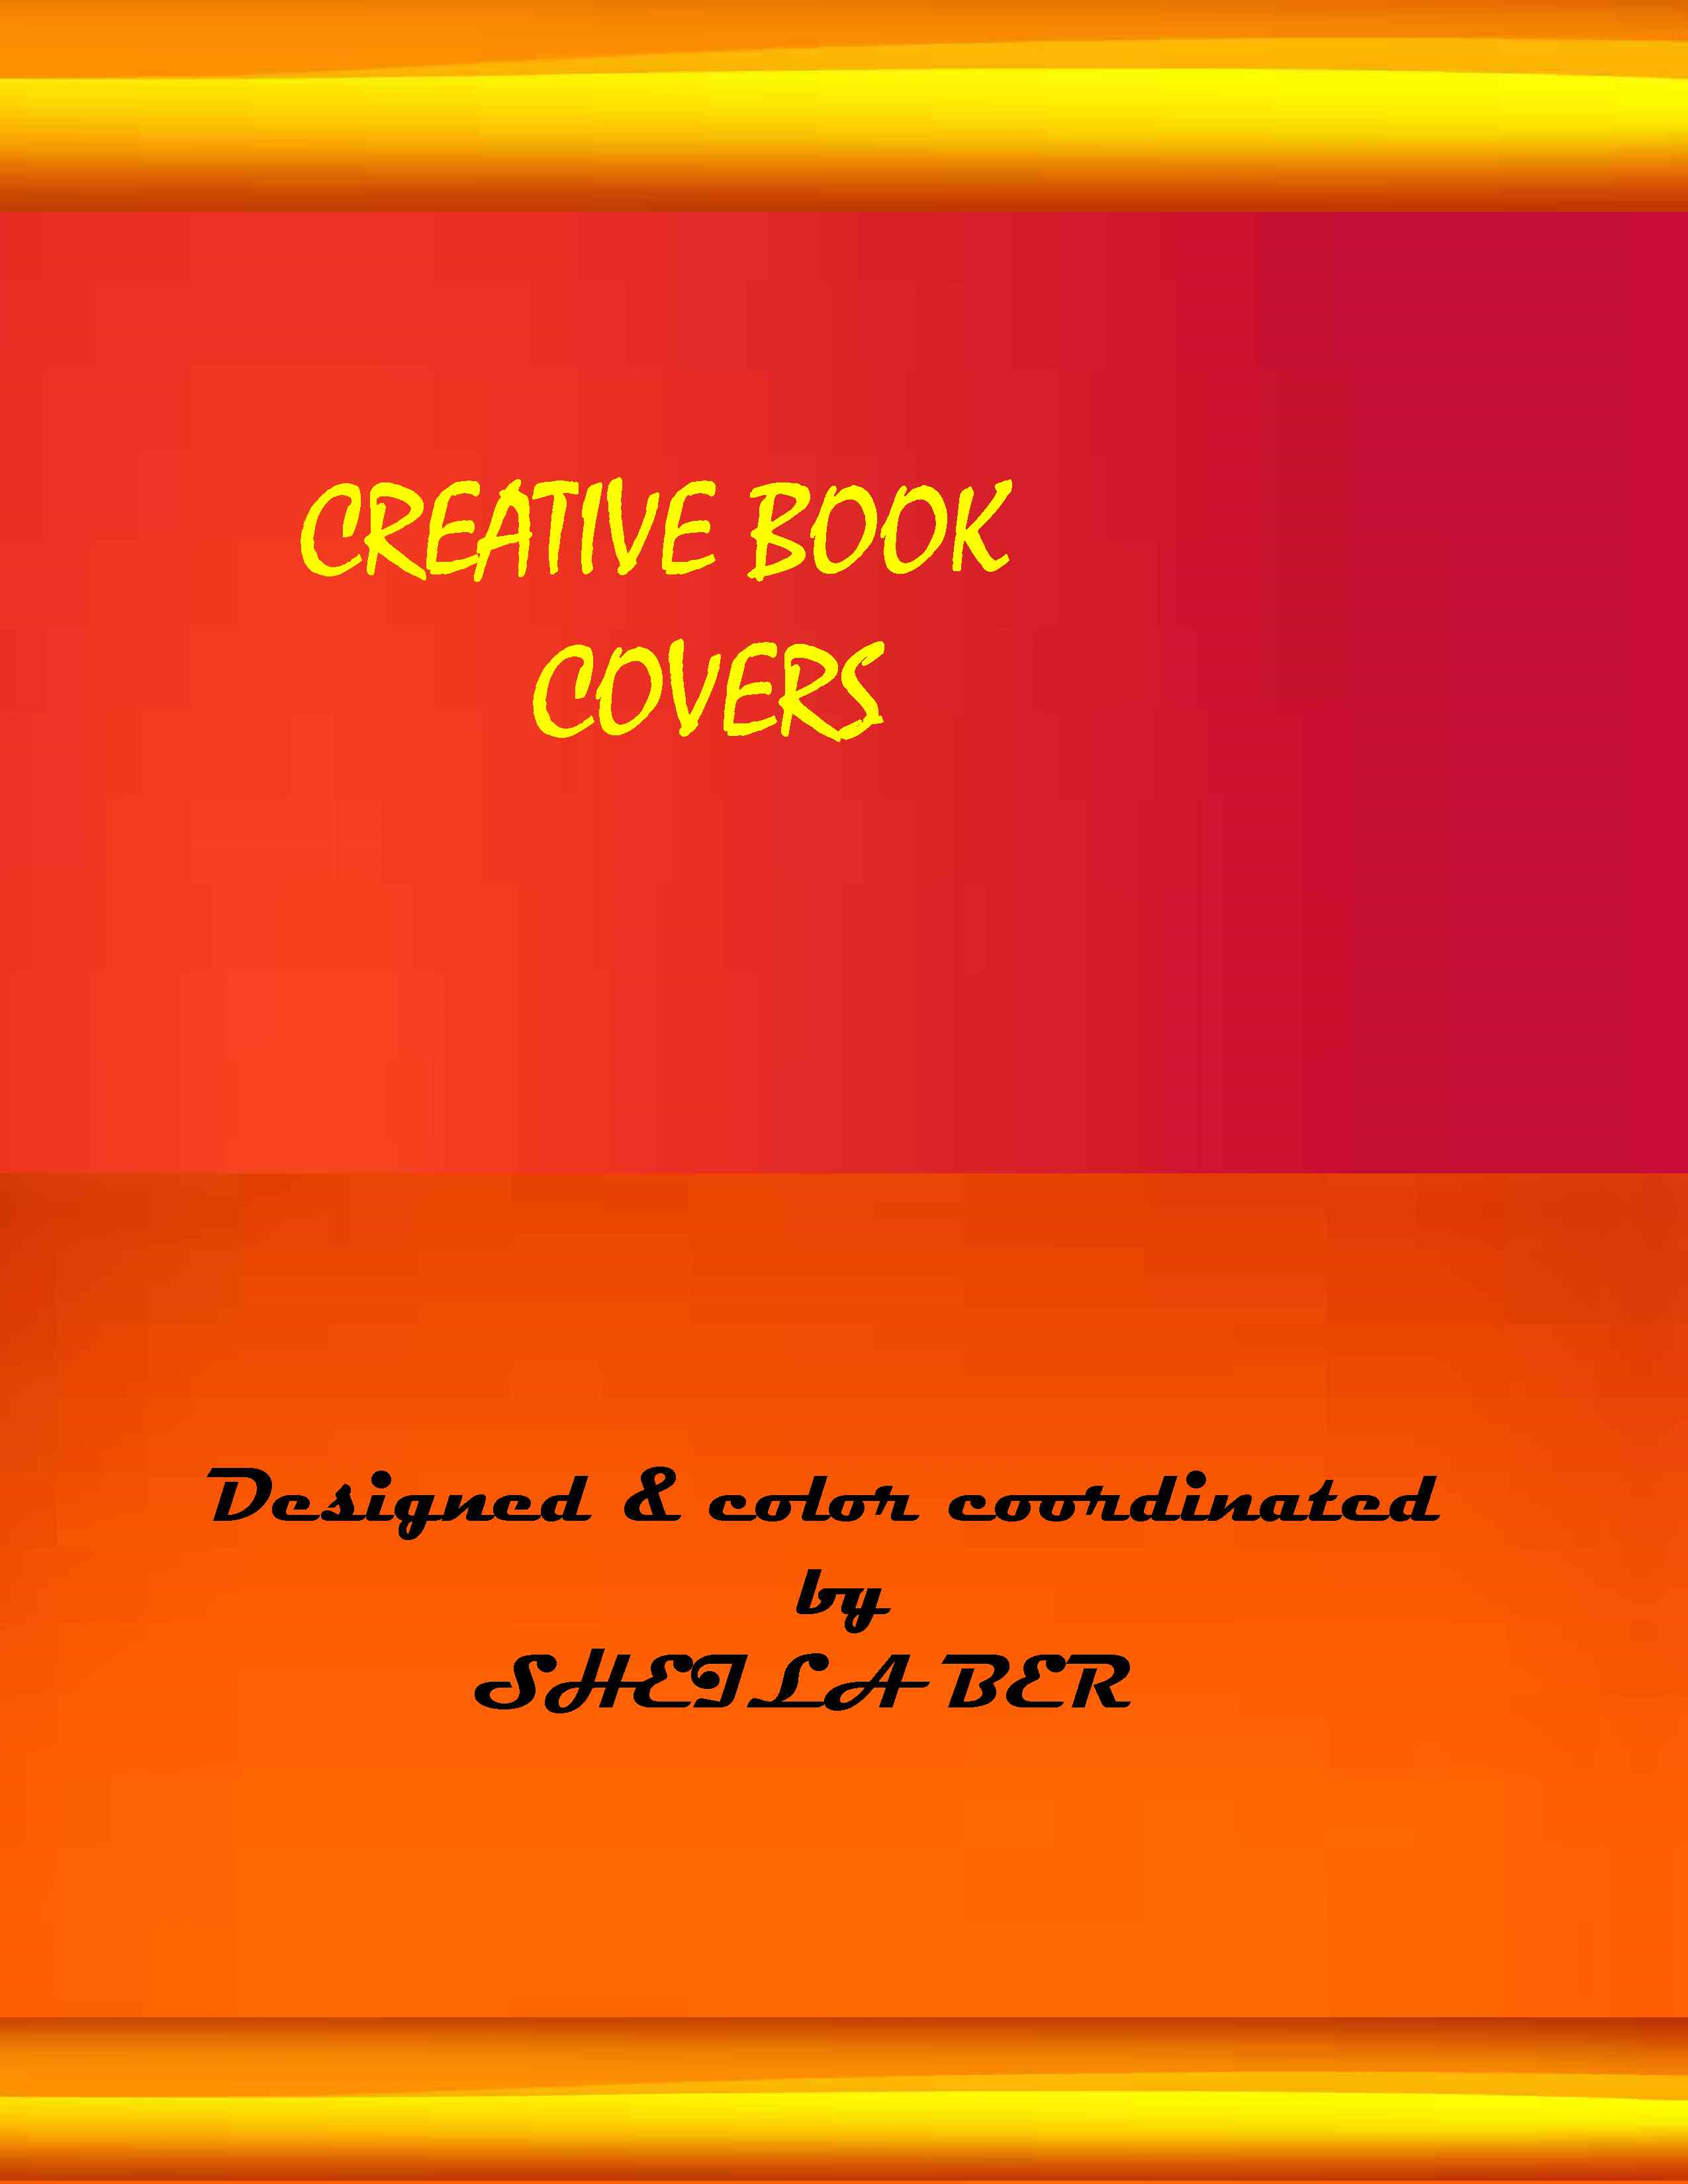 CREATIVE BOOK COVERS - Designed & color coordinated  by Sheila Ber. By: SHEILA BER